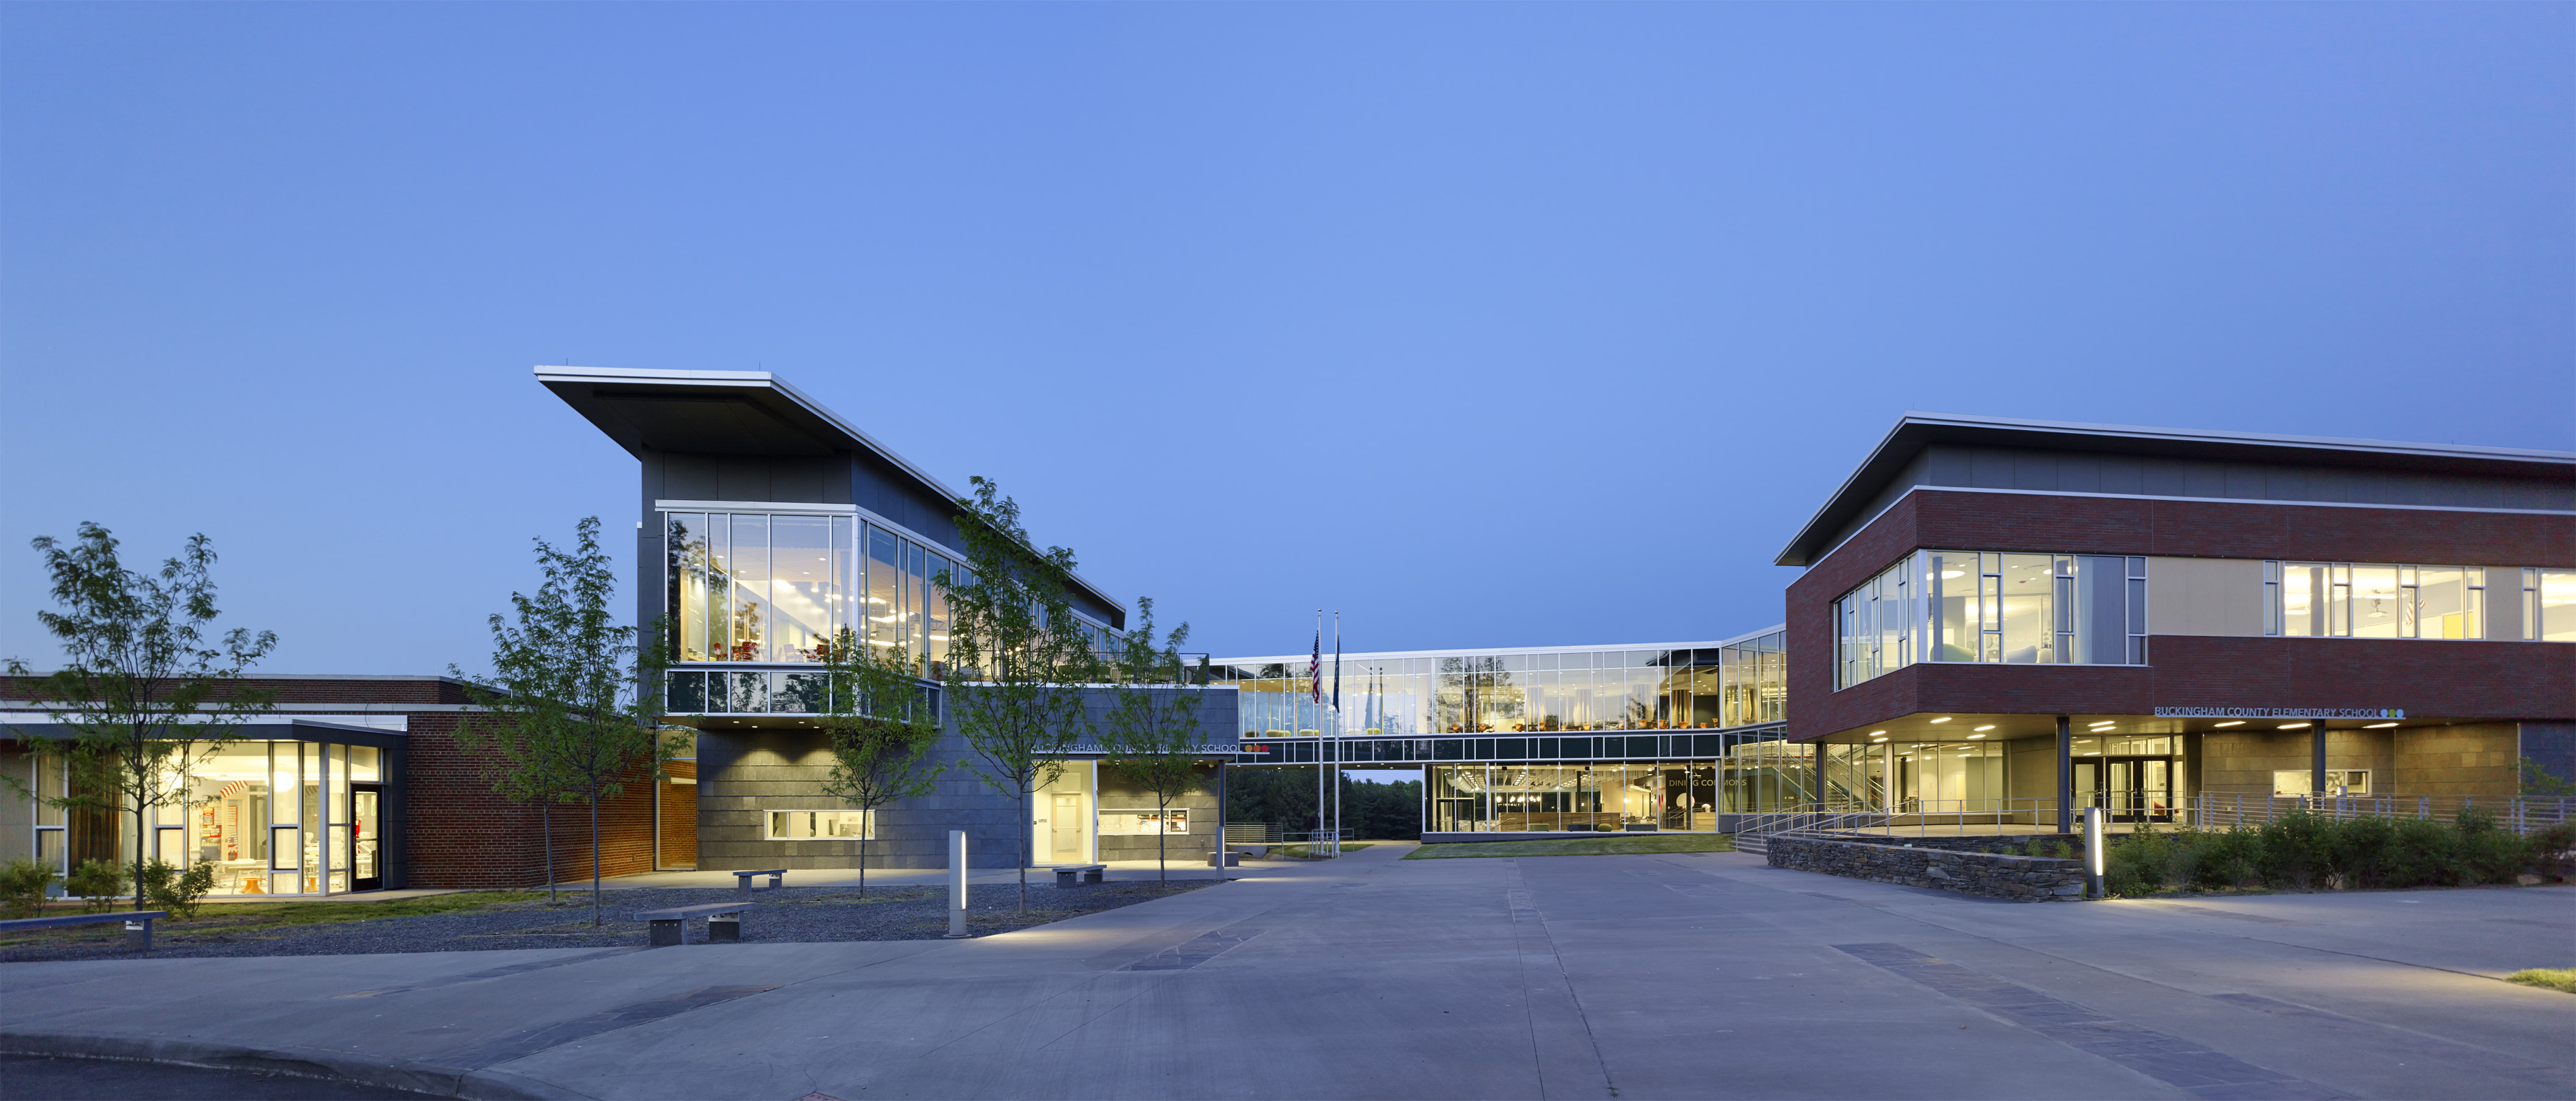 Vmdo nominated in inaugural usgbc best of awards vmdo for School building design